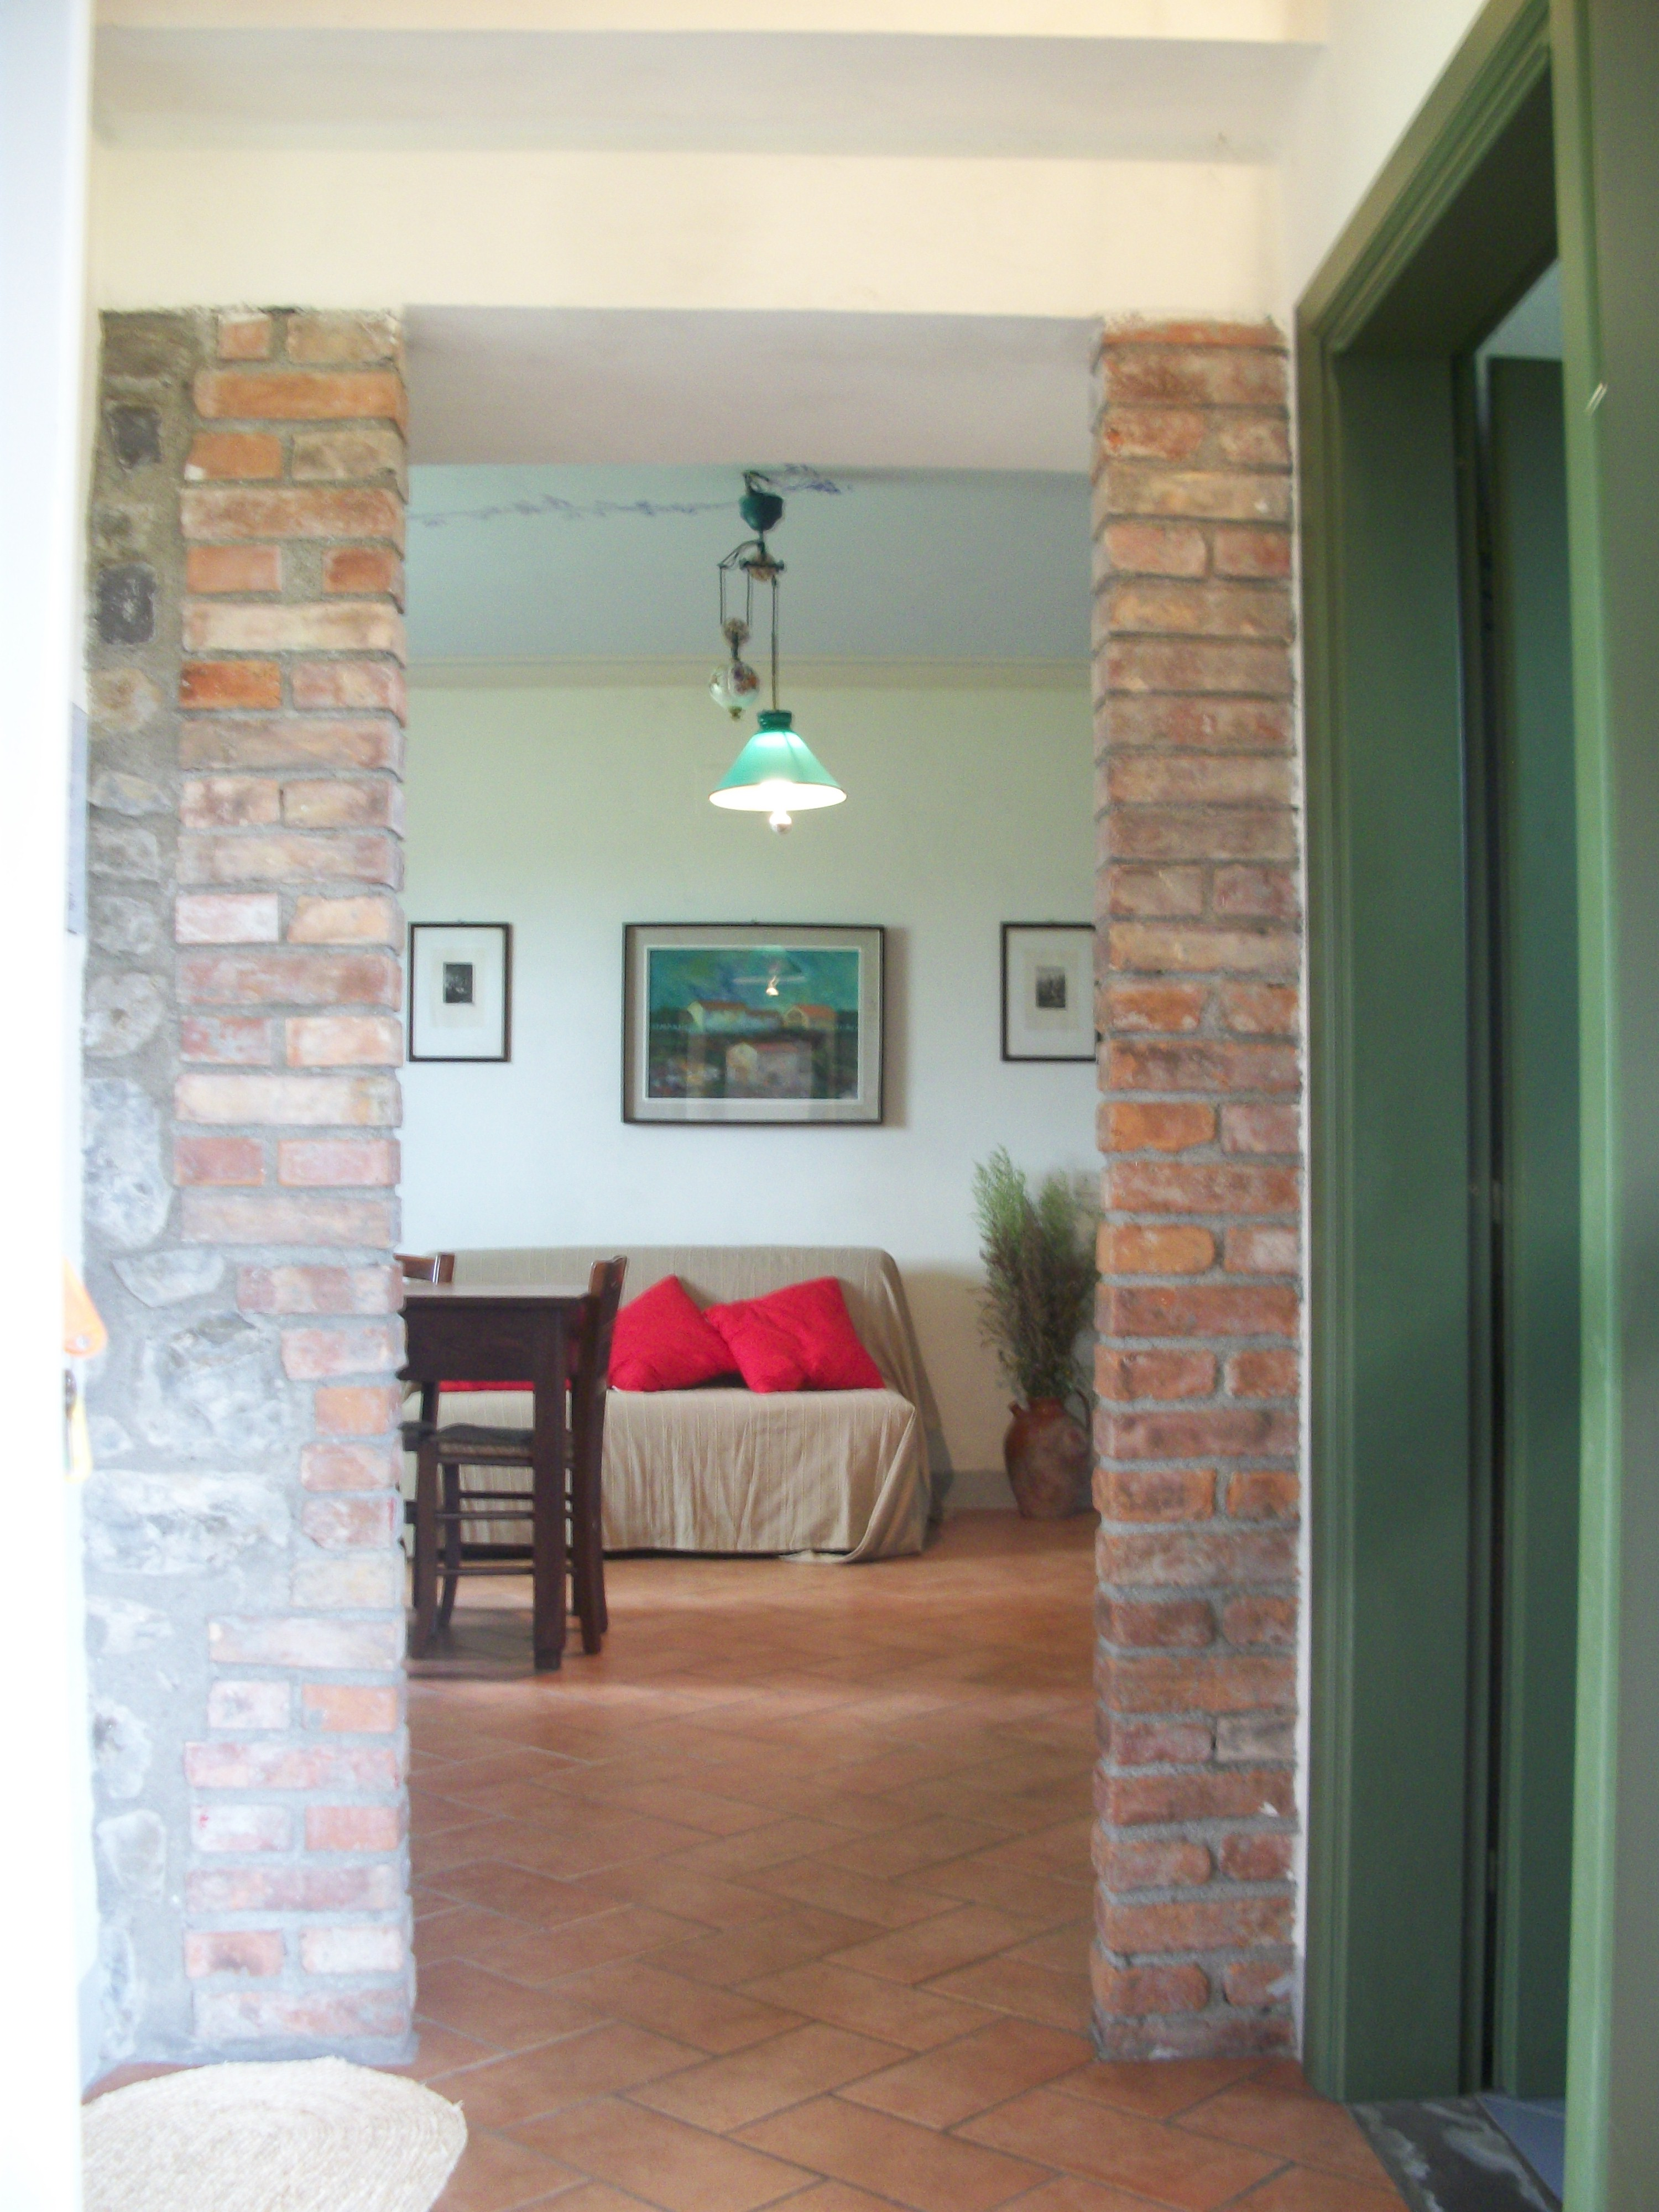 Vakantiehuis, Apartments Tuscany, Wi